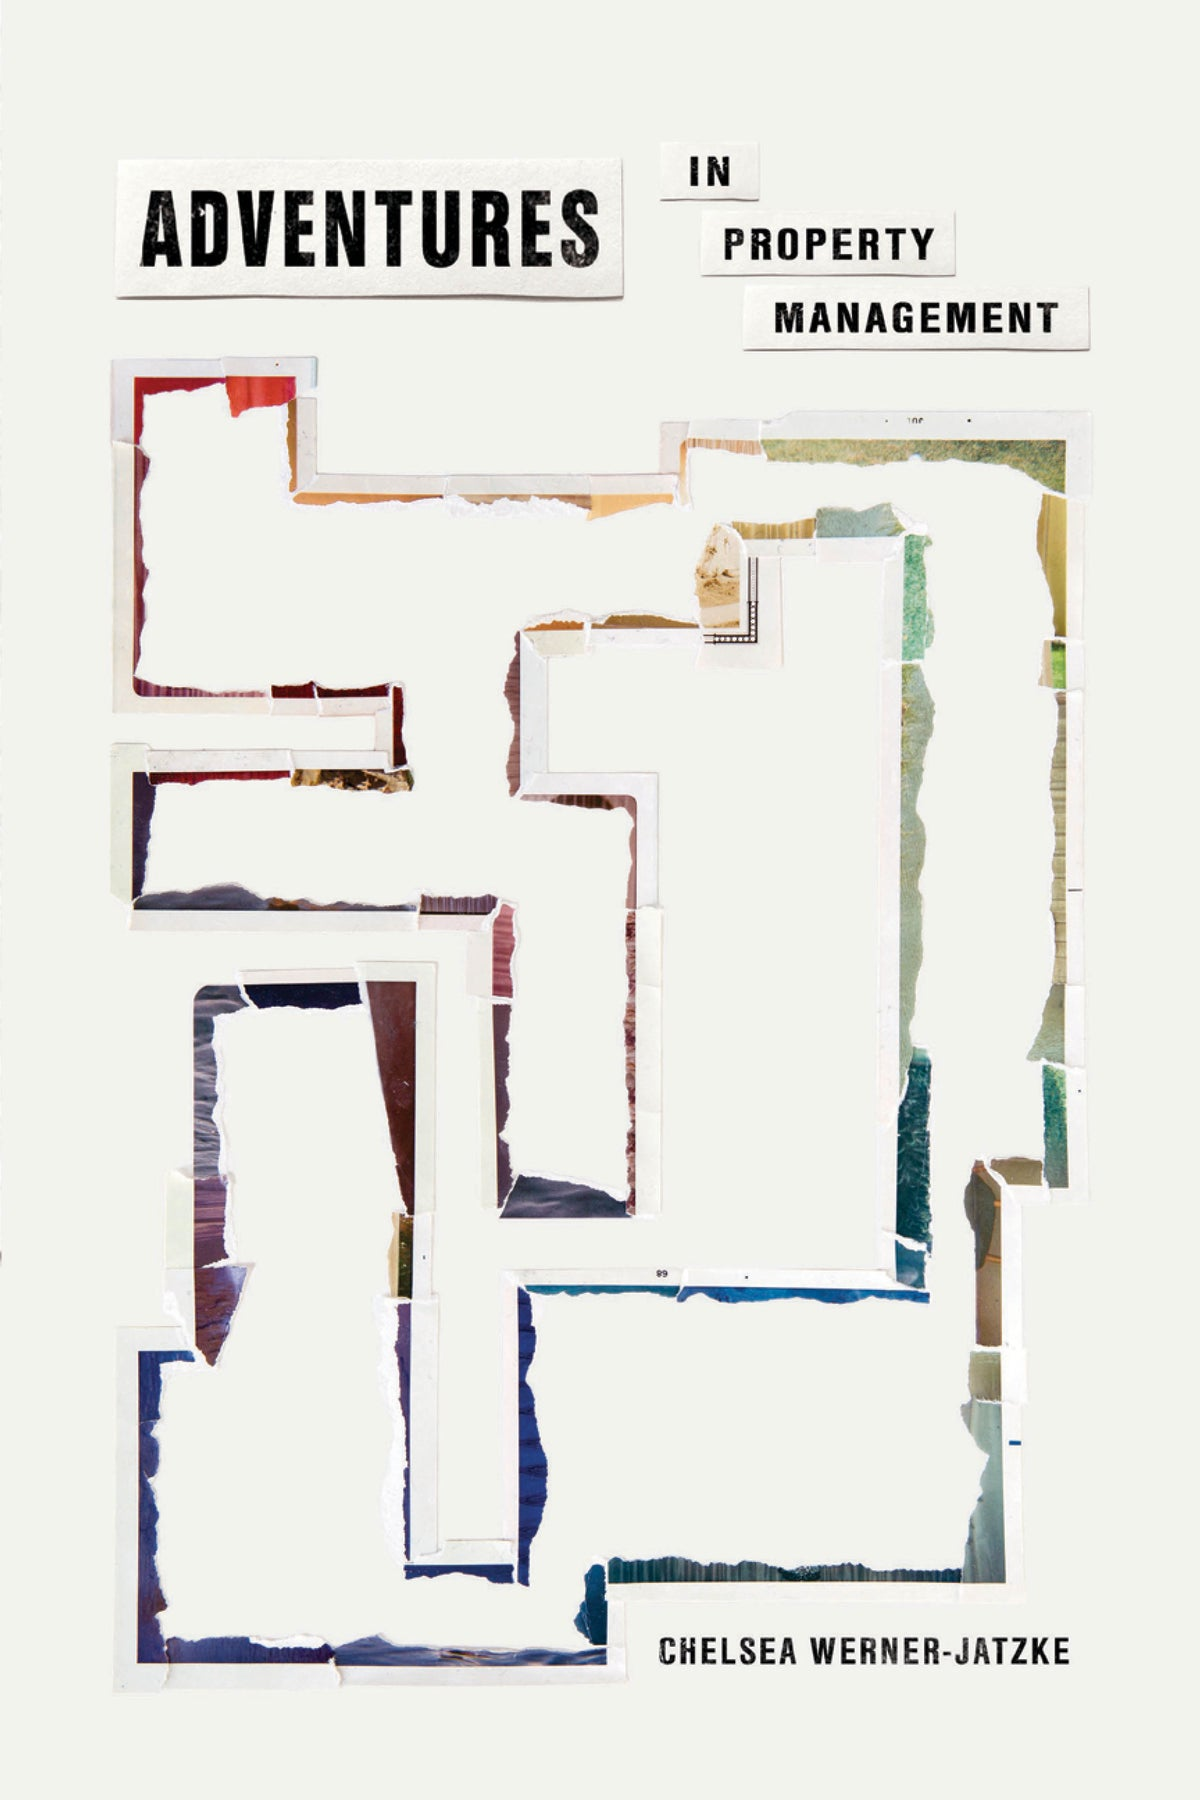 Image of Adventures in Property Management by Chelsea Werner-Jatzke